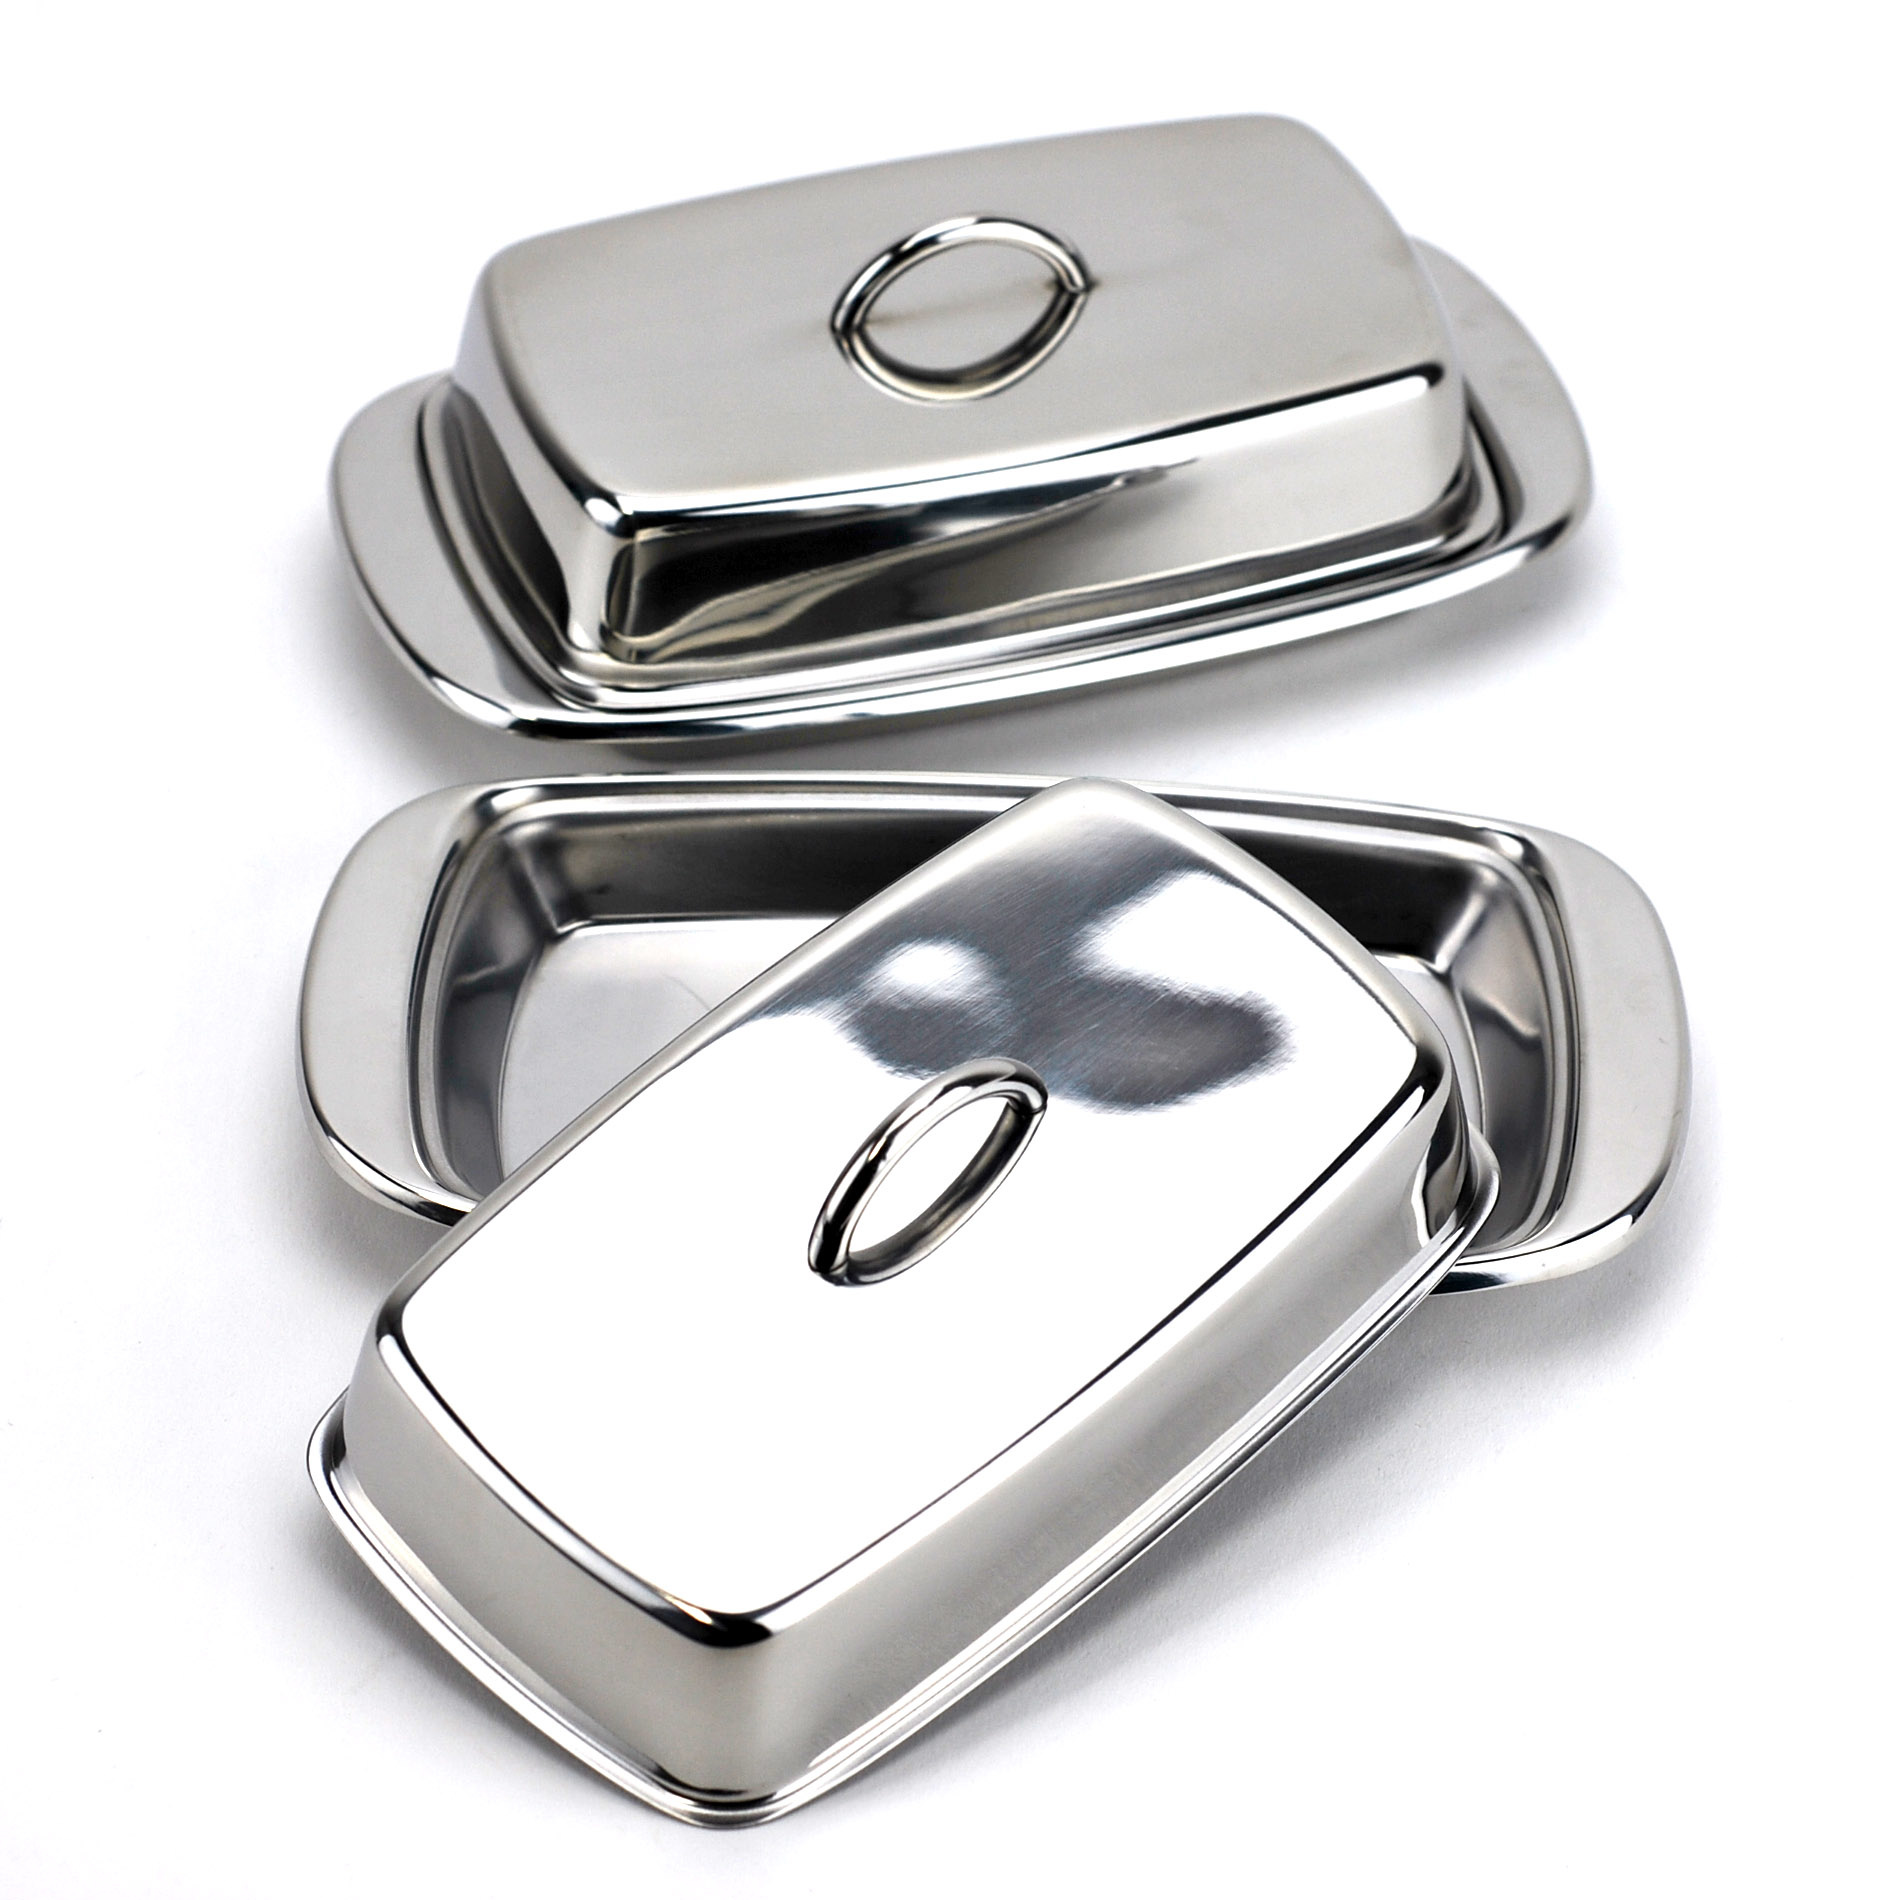 Covered butter dish with handle, French stainless steel butter dish (Pack of 2)